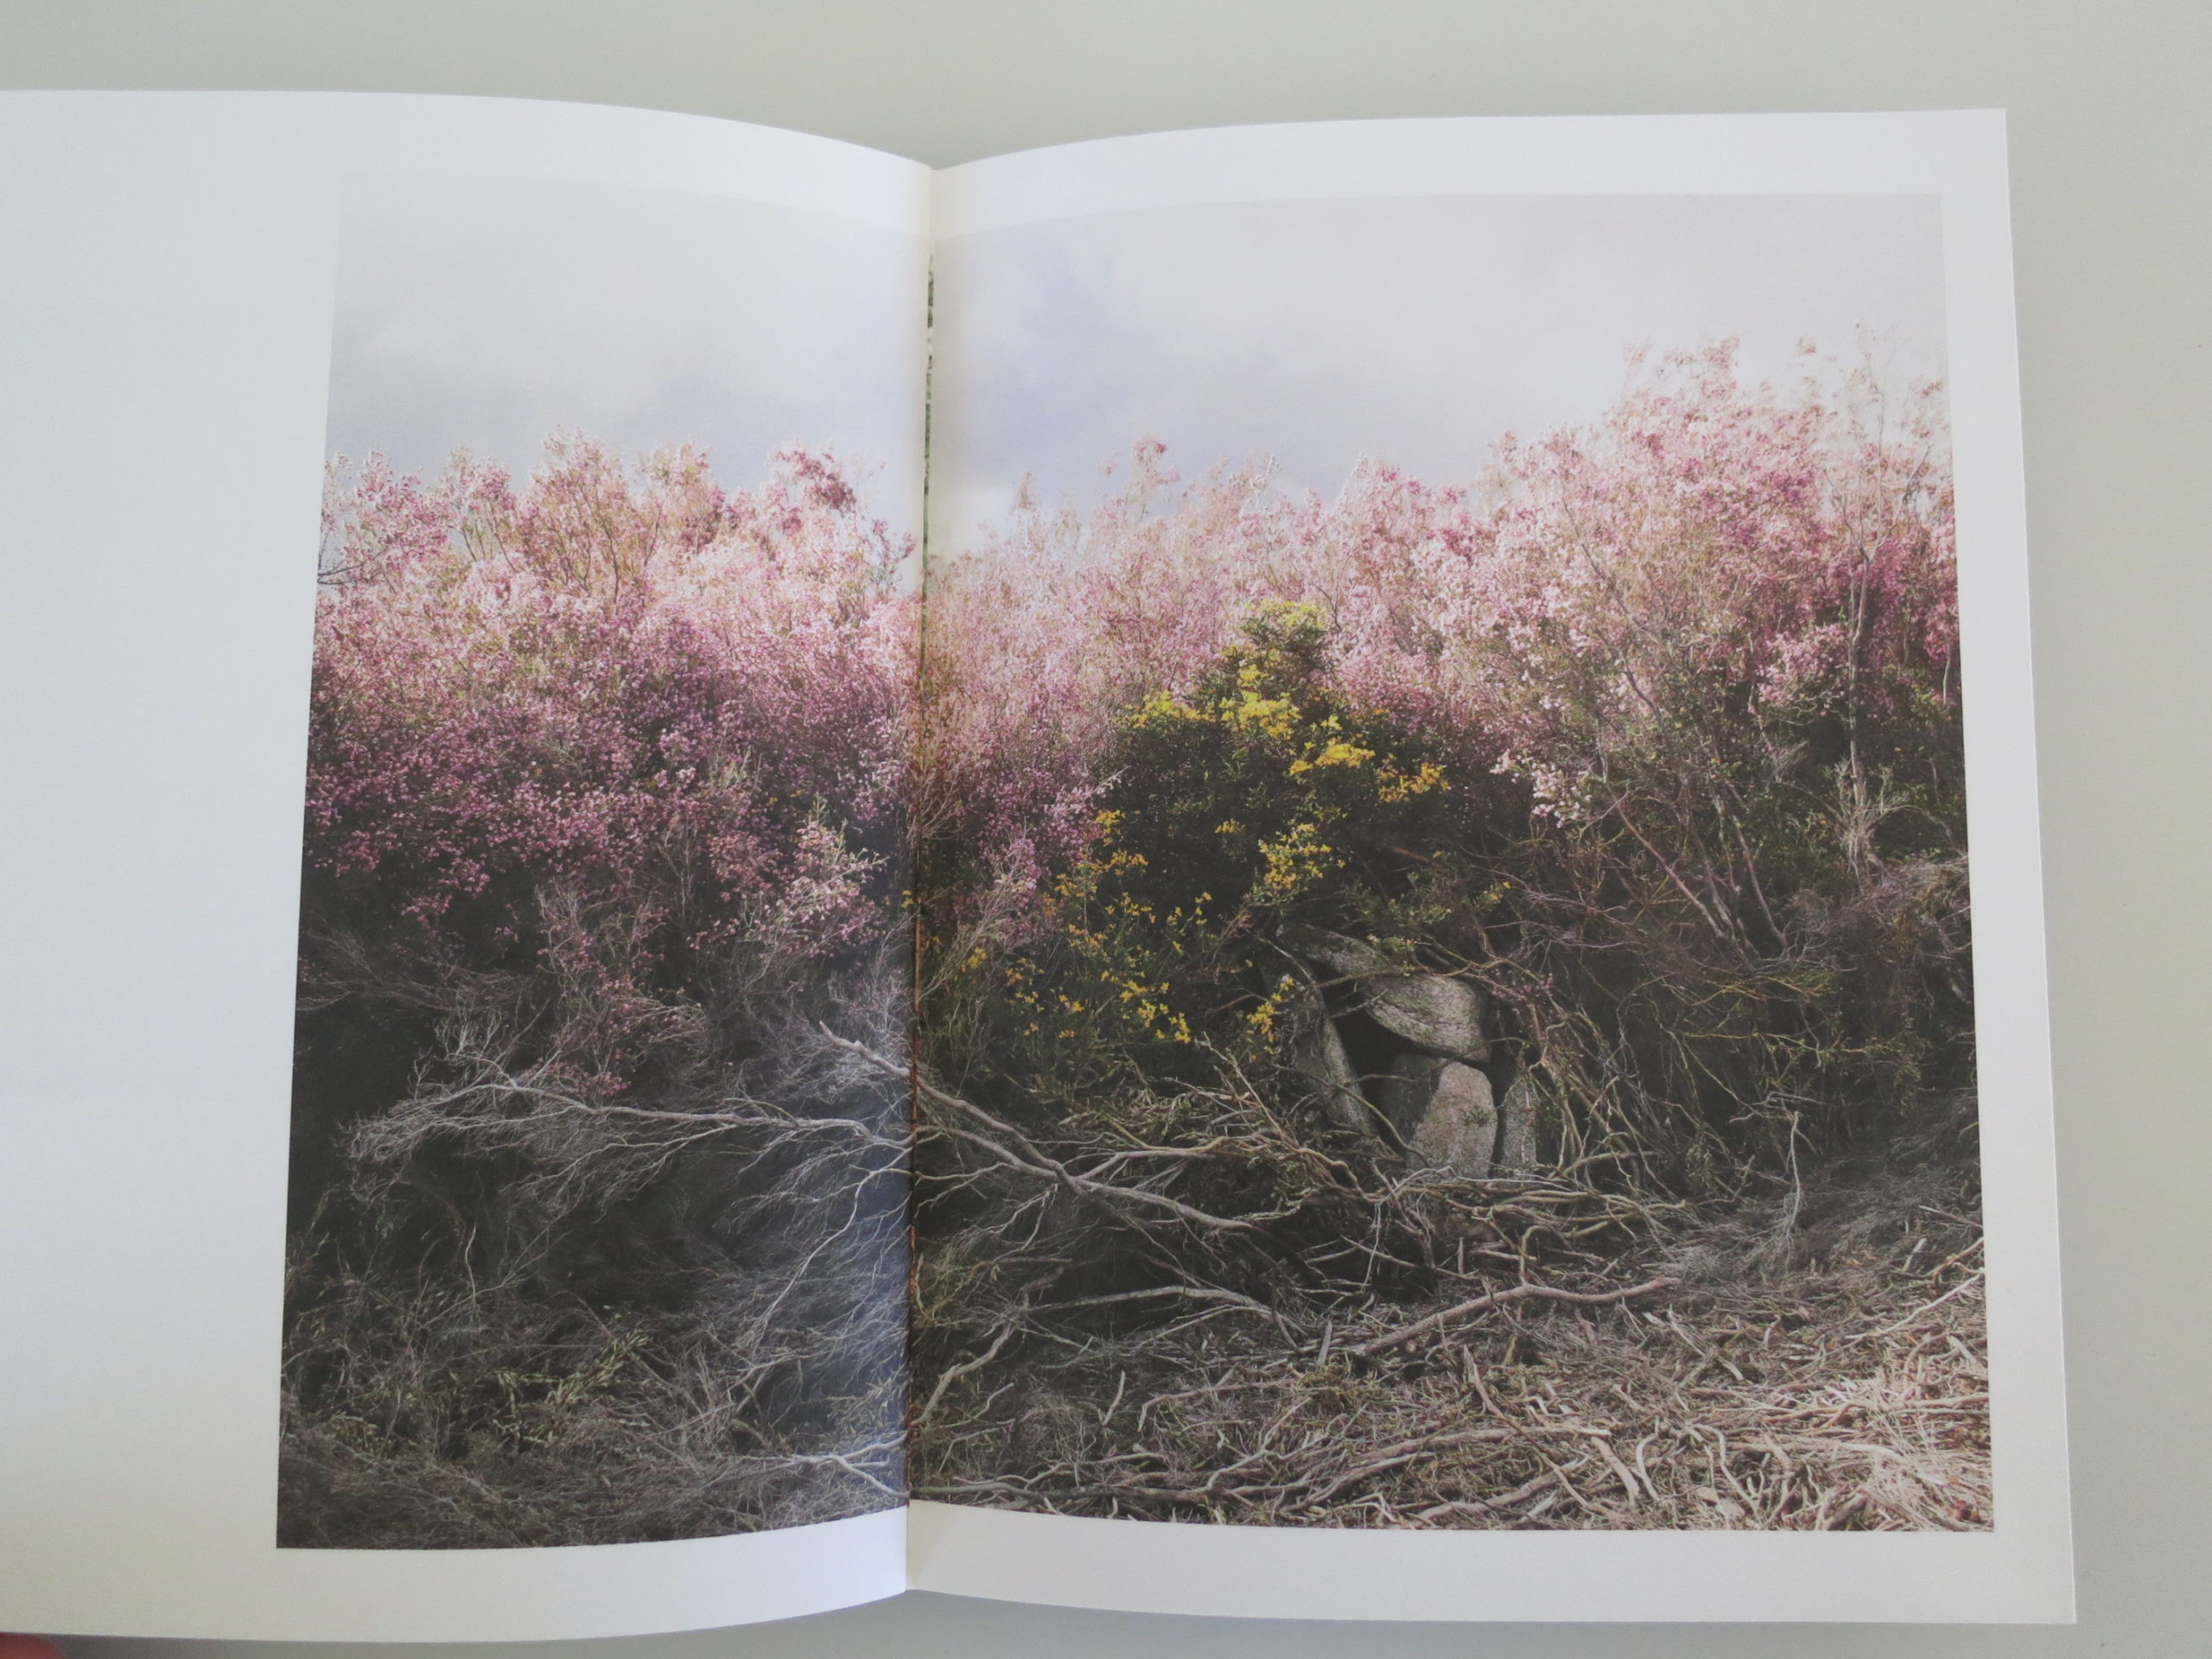 This Week In Photography Books: Paul Gaffney